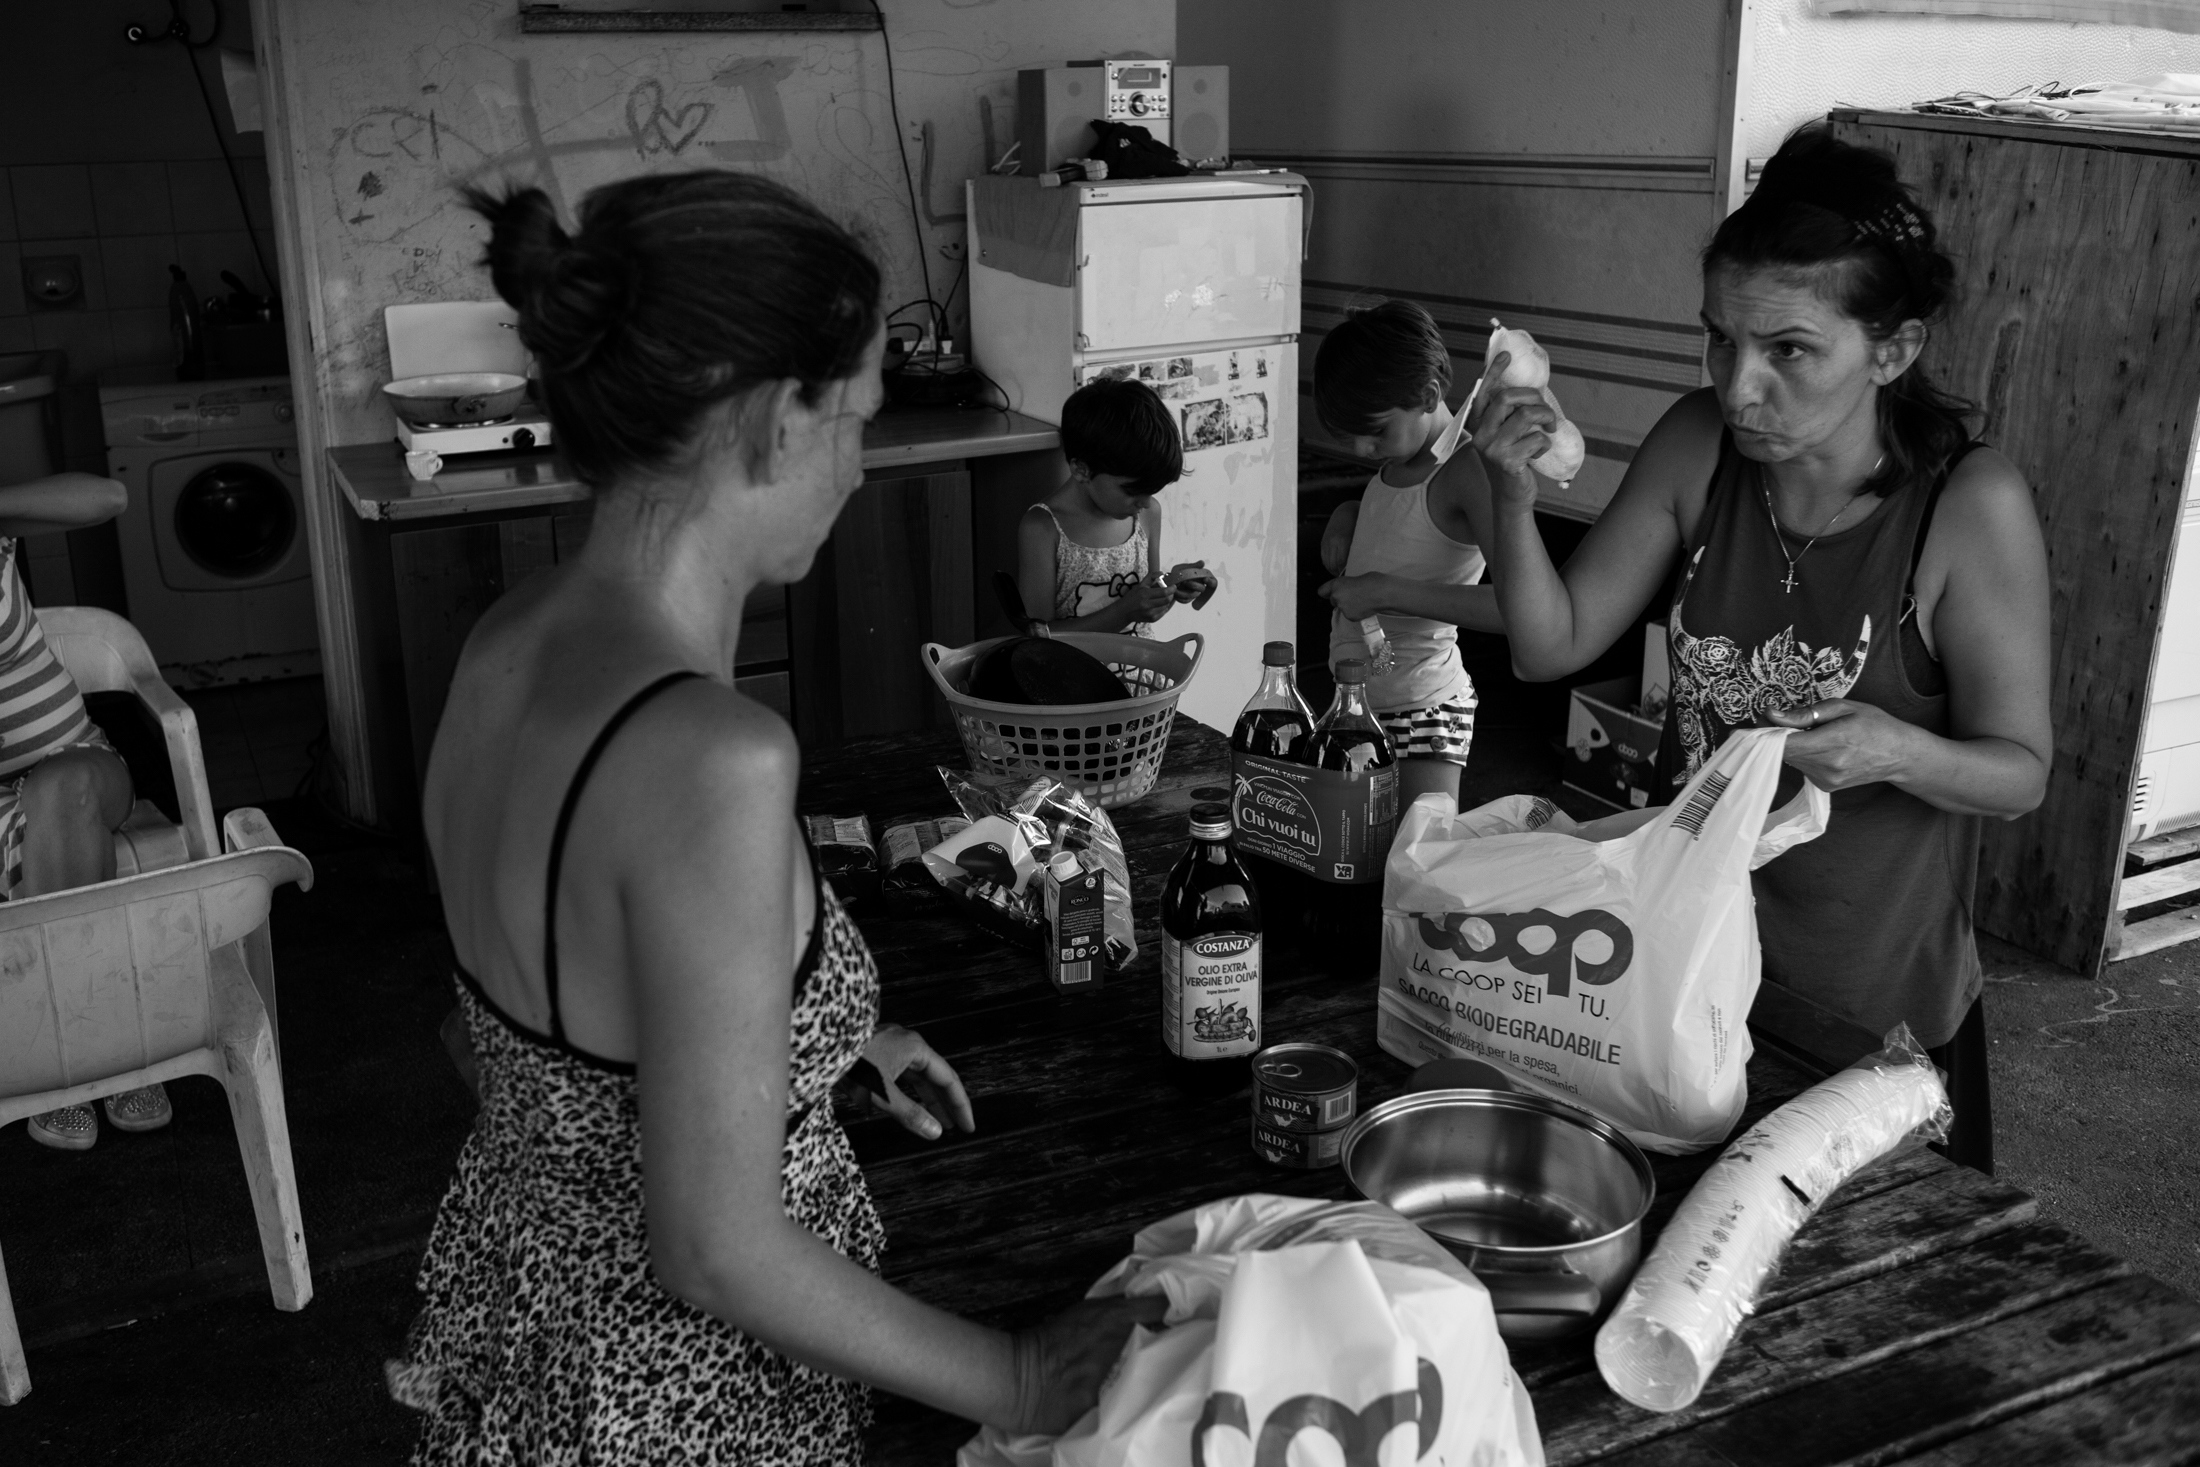 August 2017, nomad camp of Castelnuovo Rangone, Emilia-Romagna, Italy. Lady and sister Simonetta arrange the shopping and prepare to cook lunch for both families.